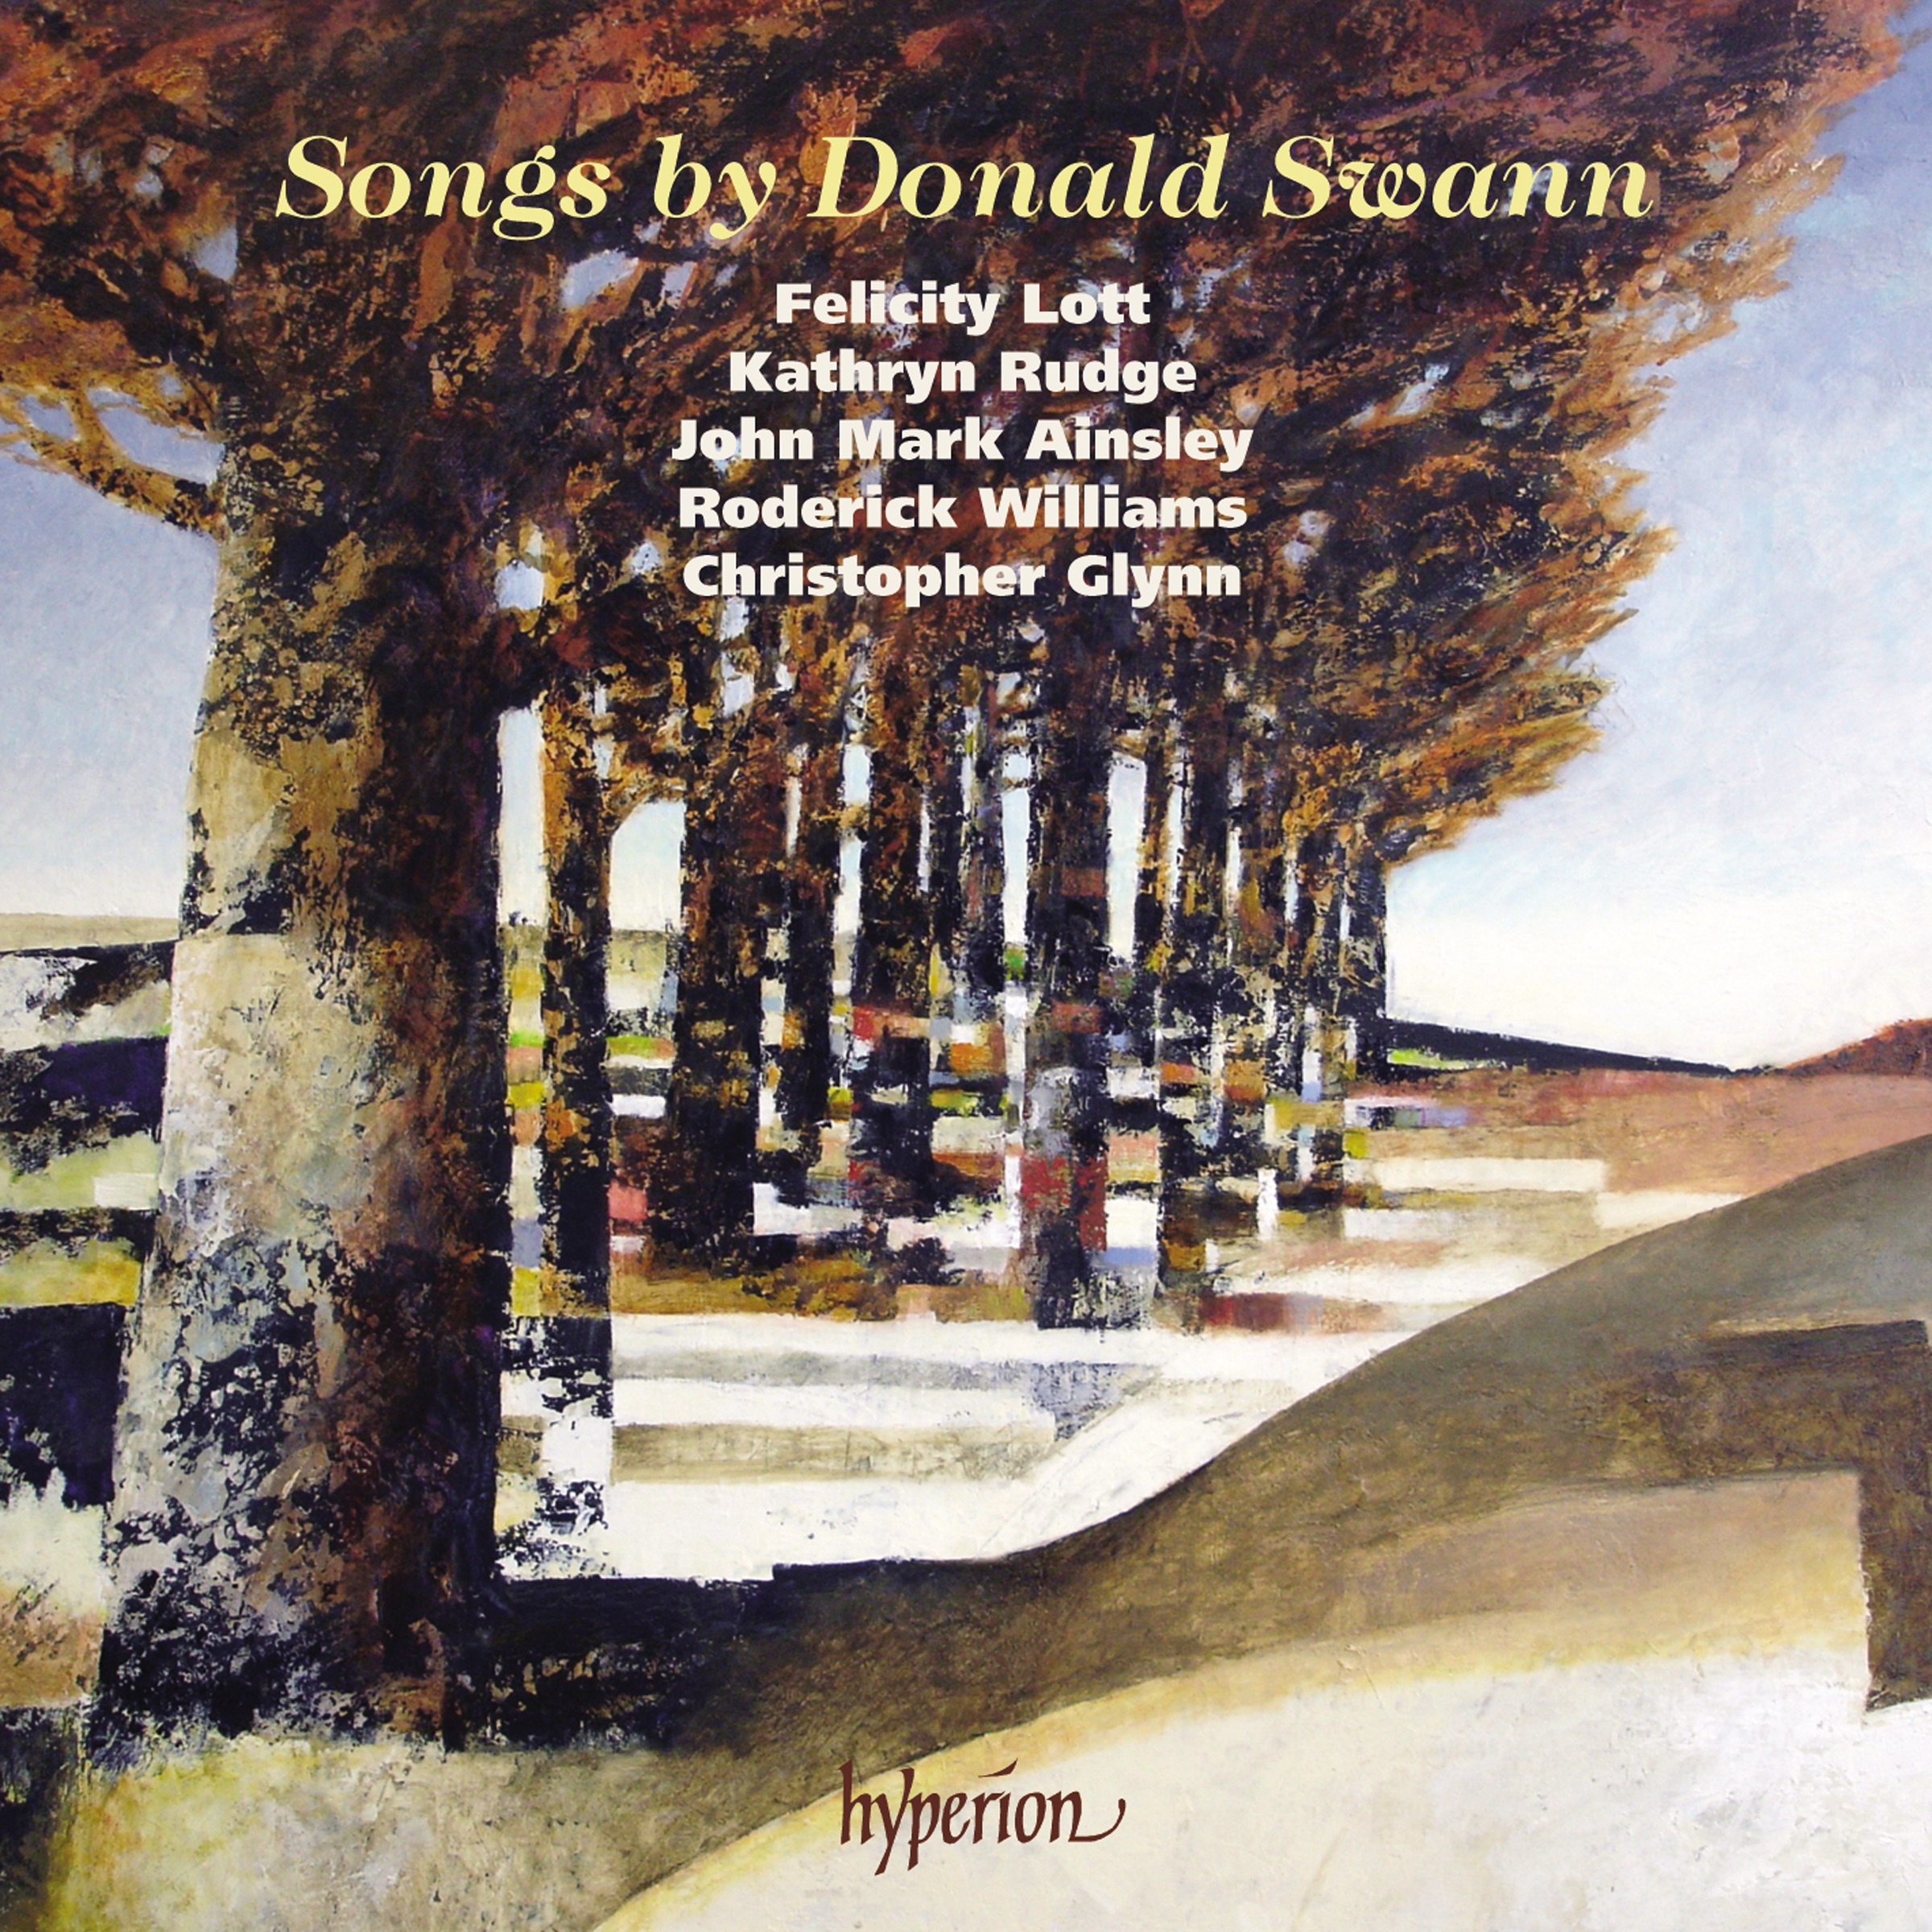 MP3 Songs Online:♫ A Red, Red Rose - Christopher Glynn album Swann: Songs. Classical,Music listen to music online free without downloading.